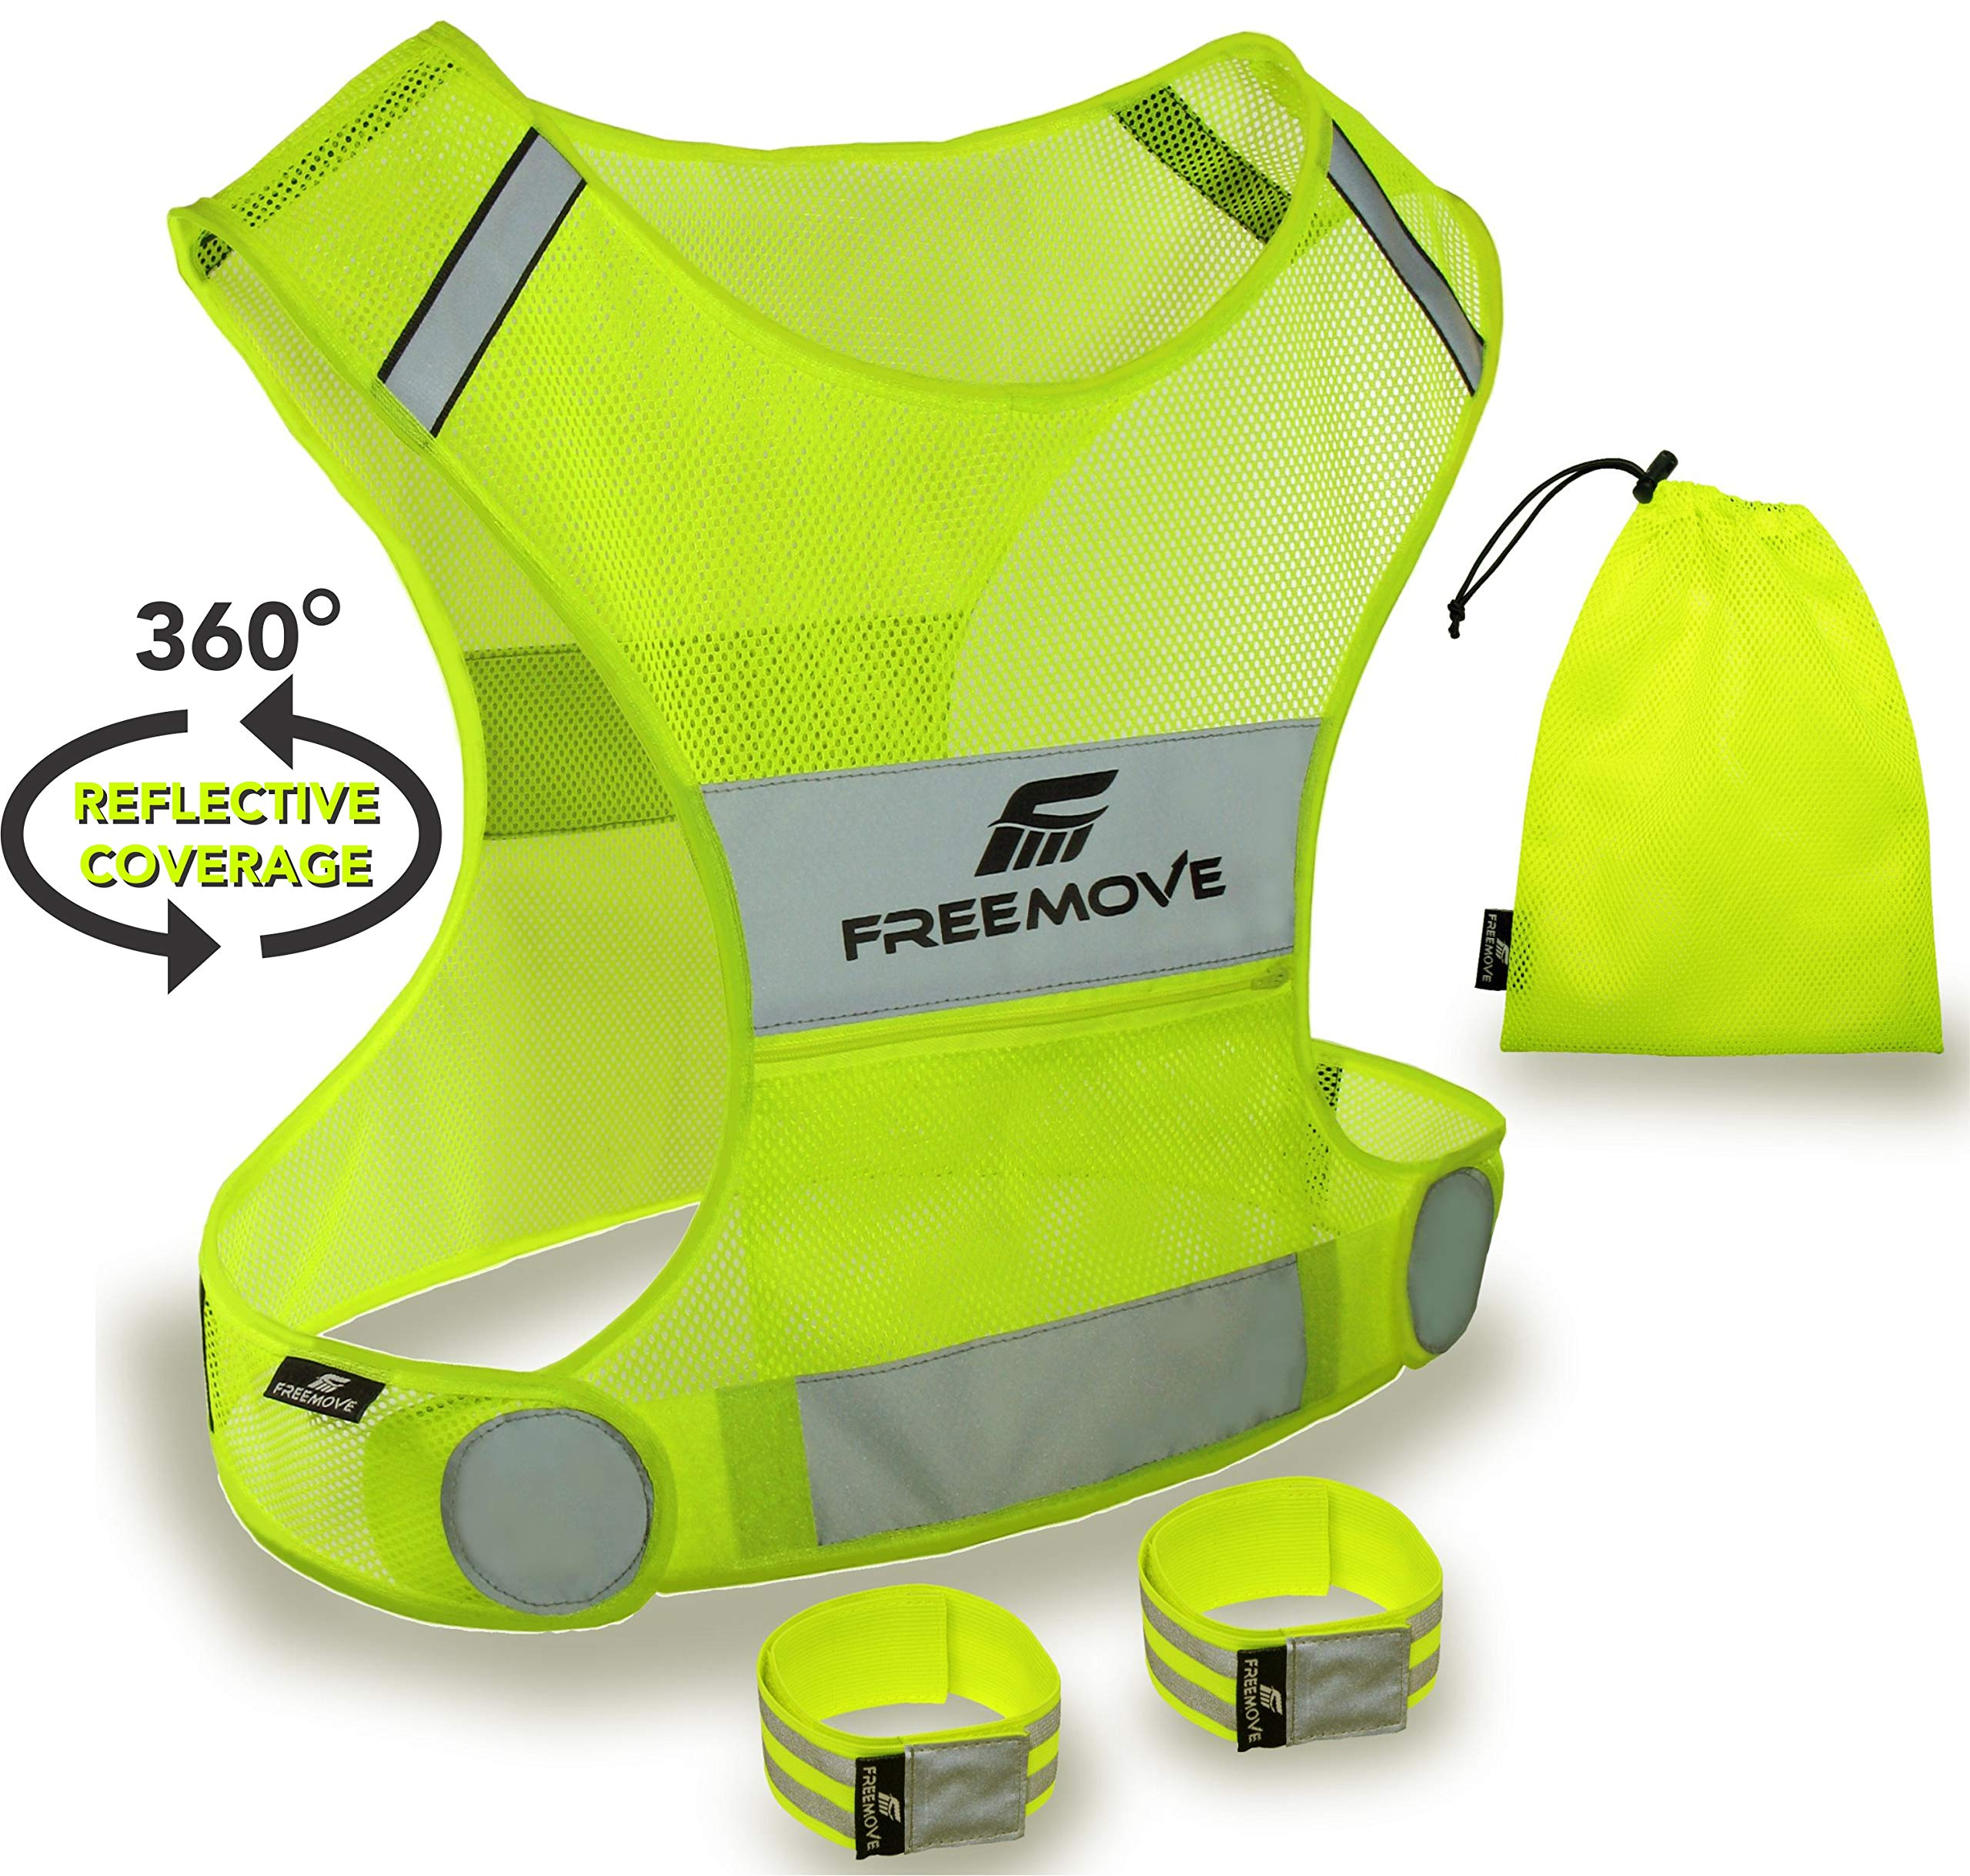 No.1 Reflective Vest Running Gear | Your Best Choice to Stay Visible | Ultralight & Comfy Motorcycle Reflective Vest | Large Pocket & Adjustable Waist | Safety Vest in 6 Sizes + Hi Vis Bands & Bag by FREEMOVE